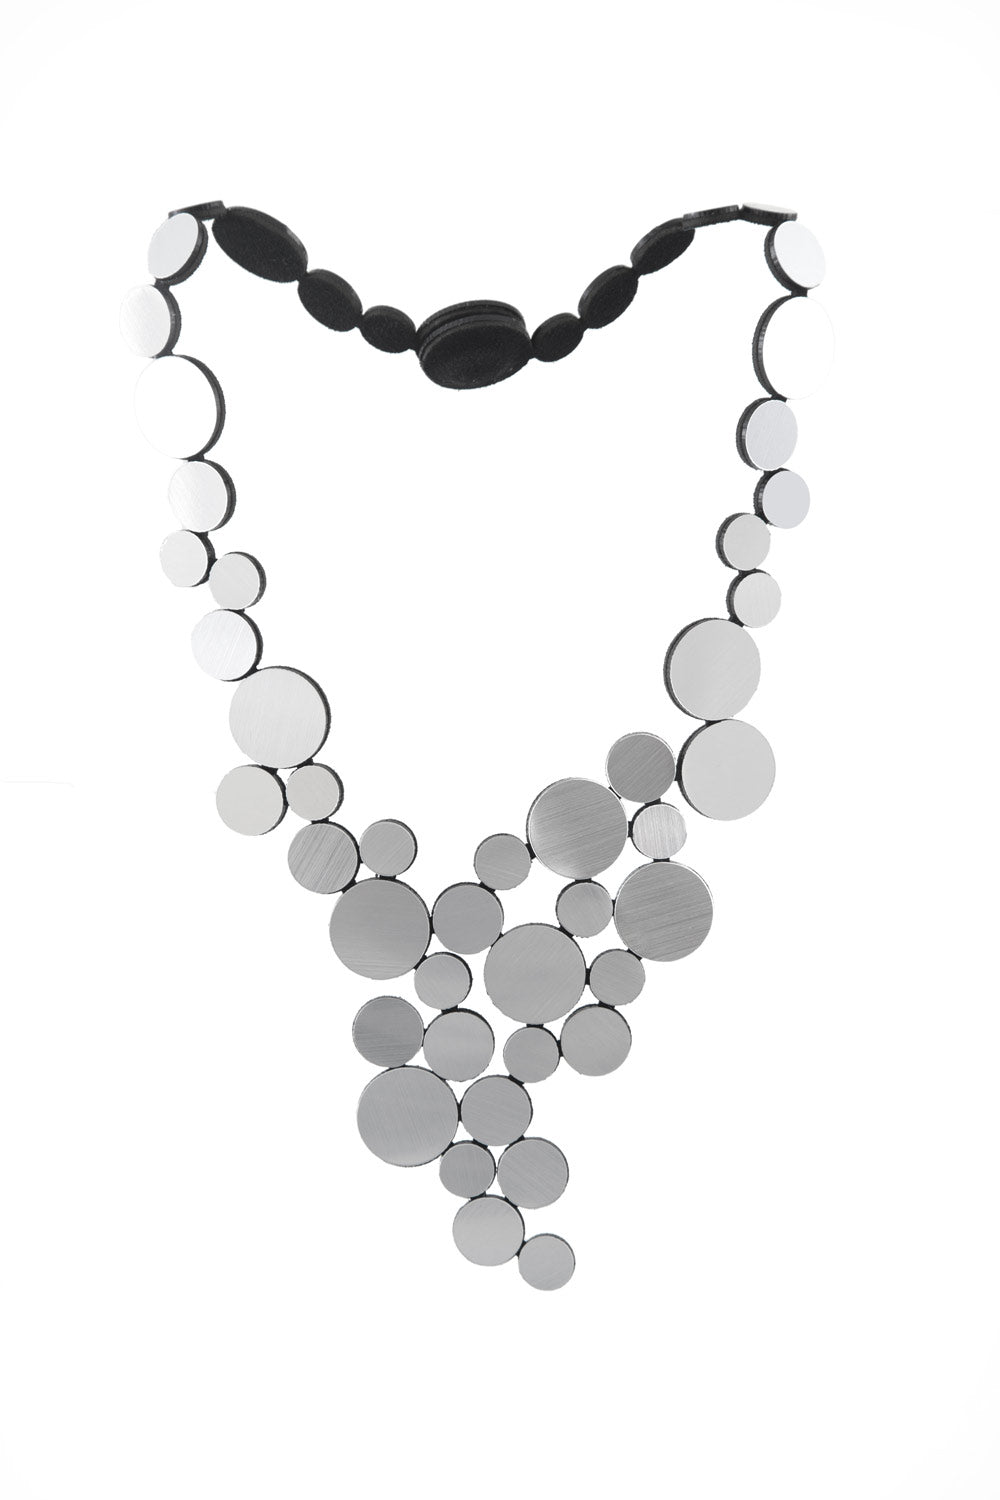 Abstraction Necklace V